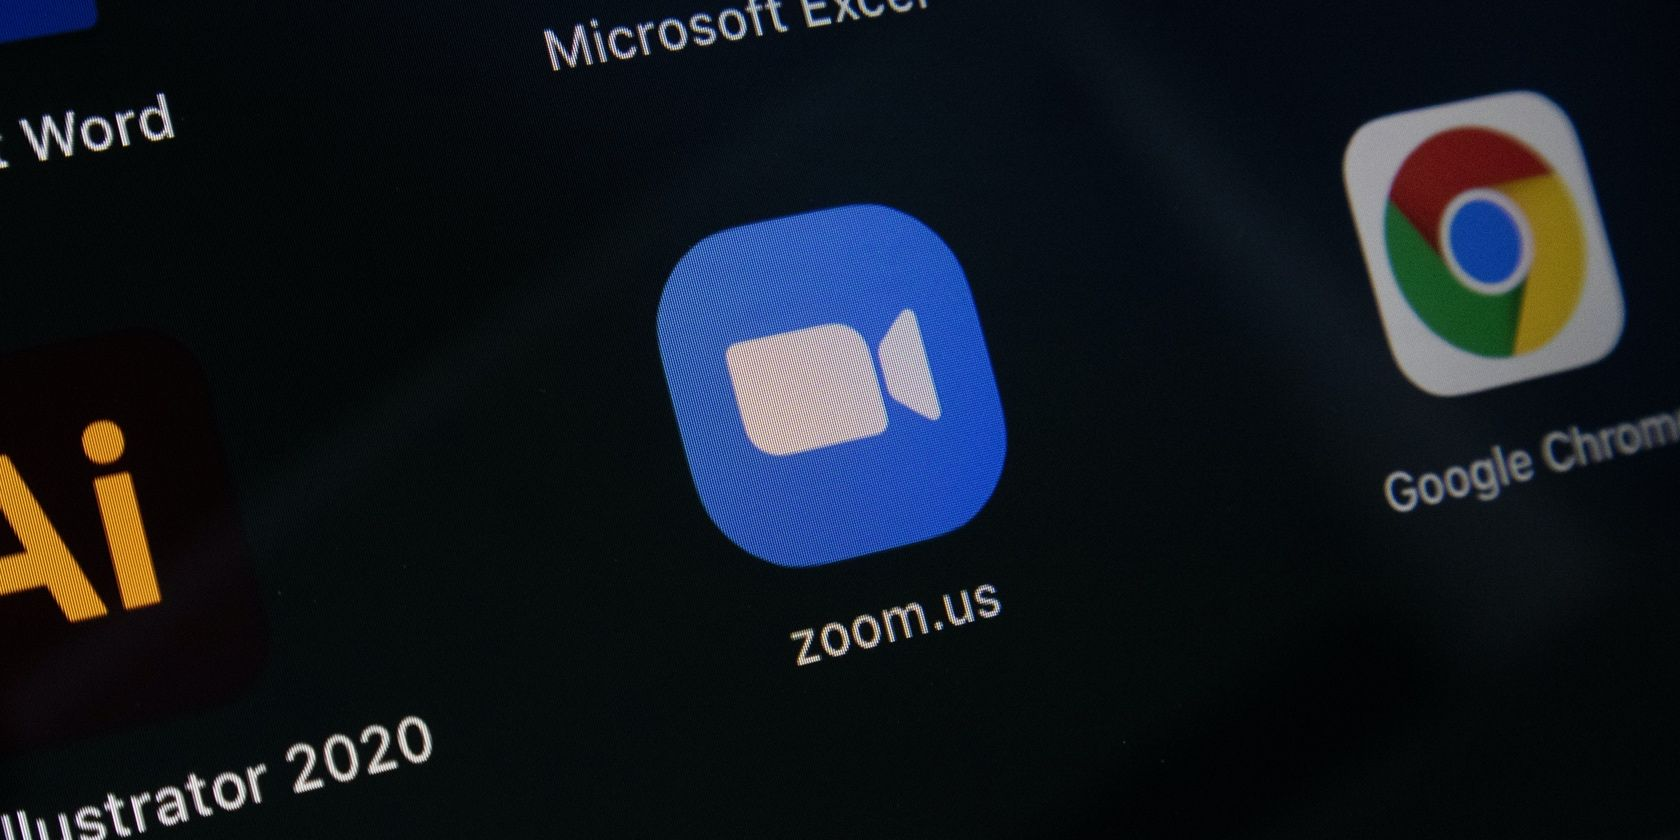 How to Use Center Stage to Keep the Camera on You in Zoom Calls